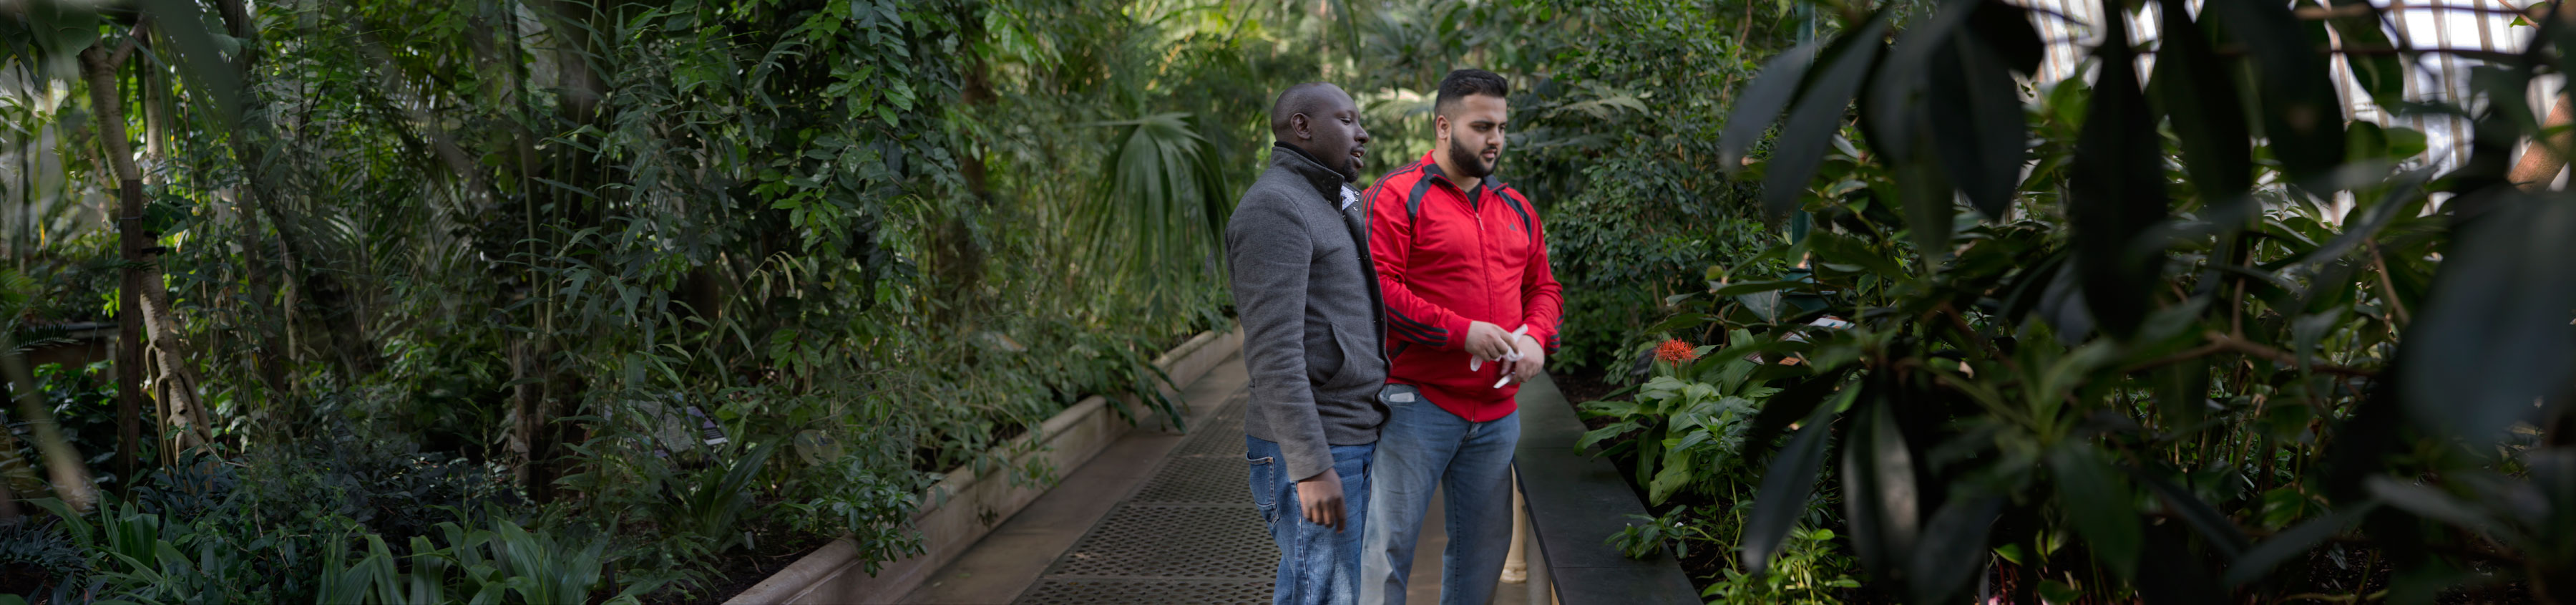 Researchers looking at plants in Kew's Palm house